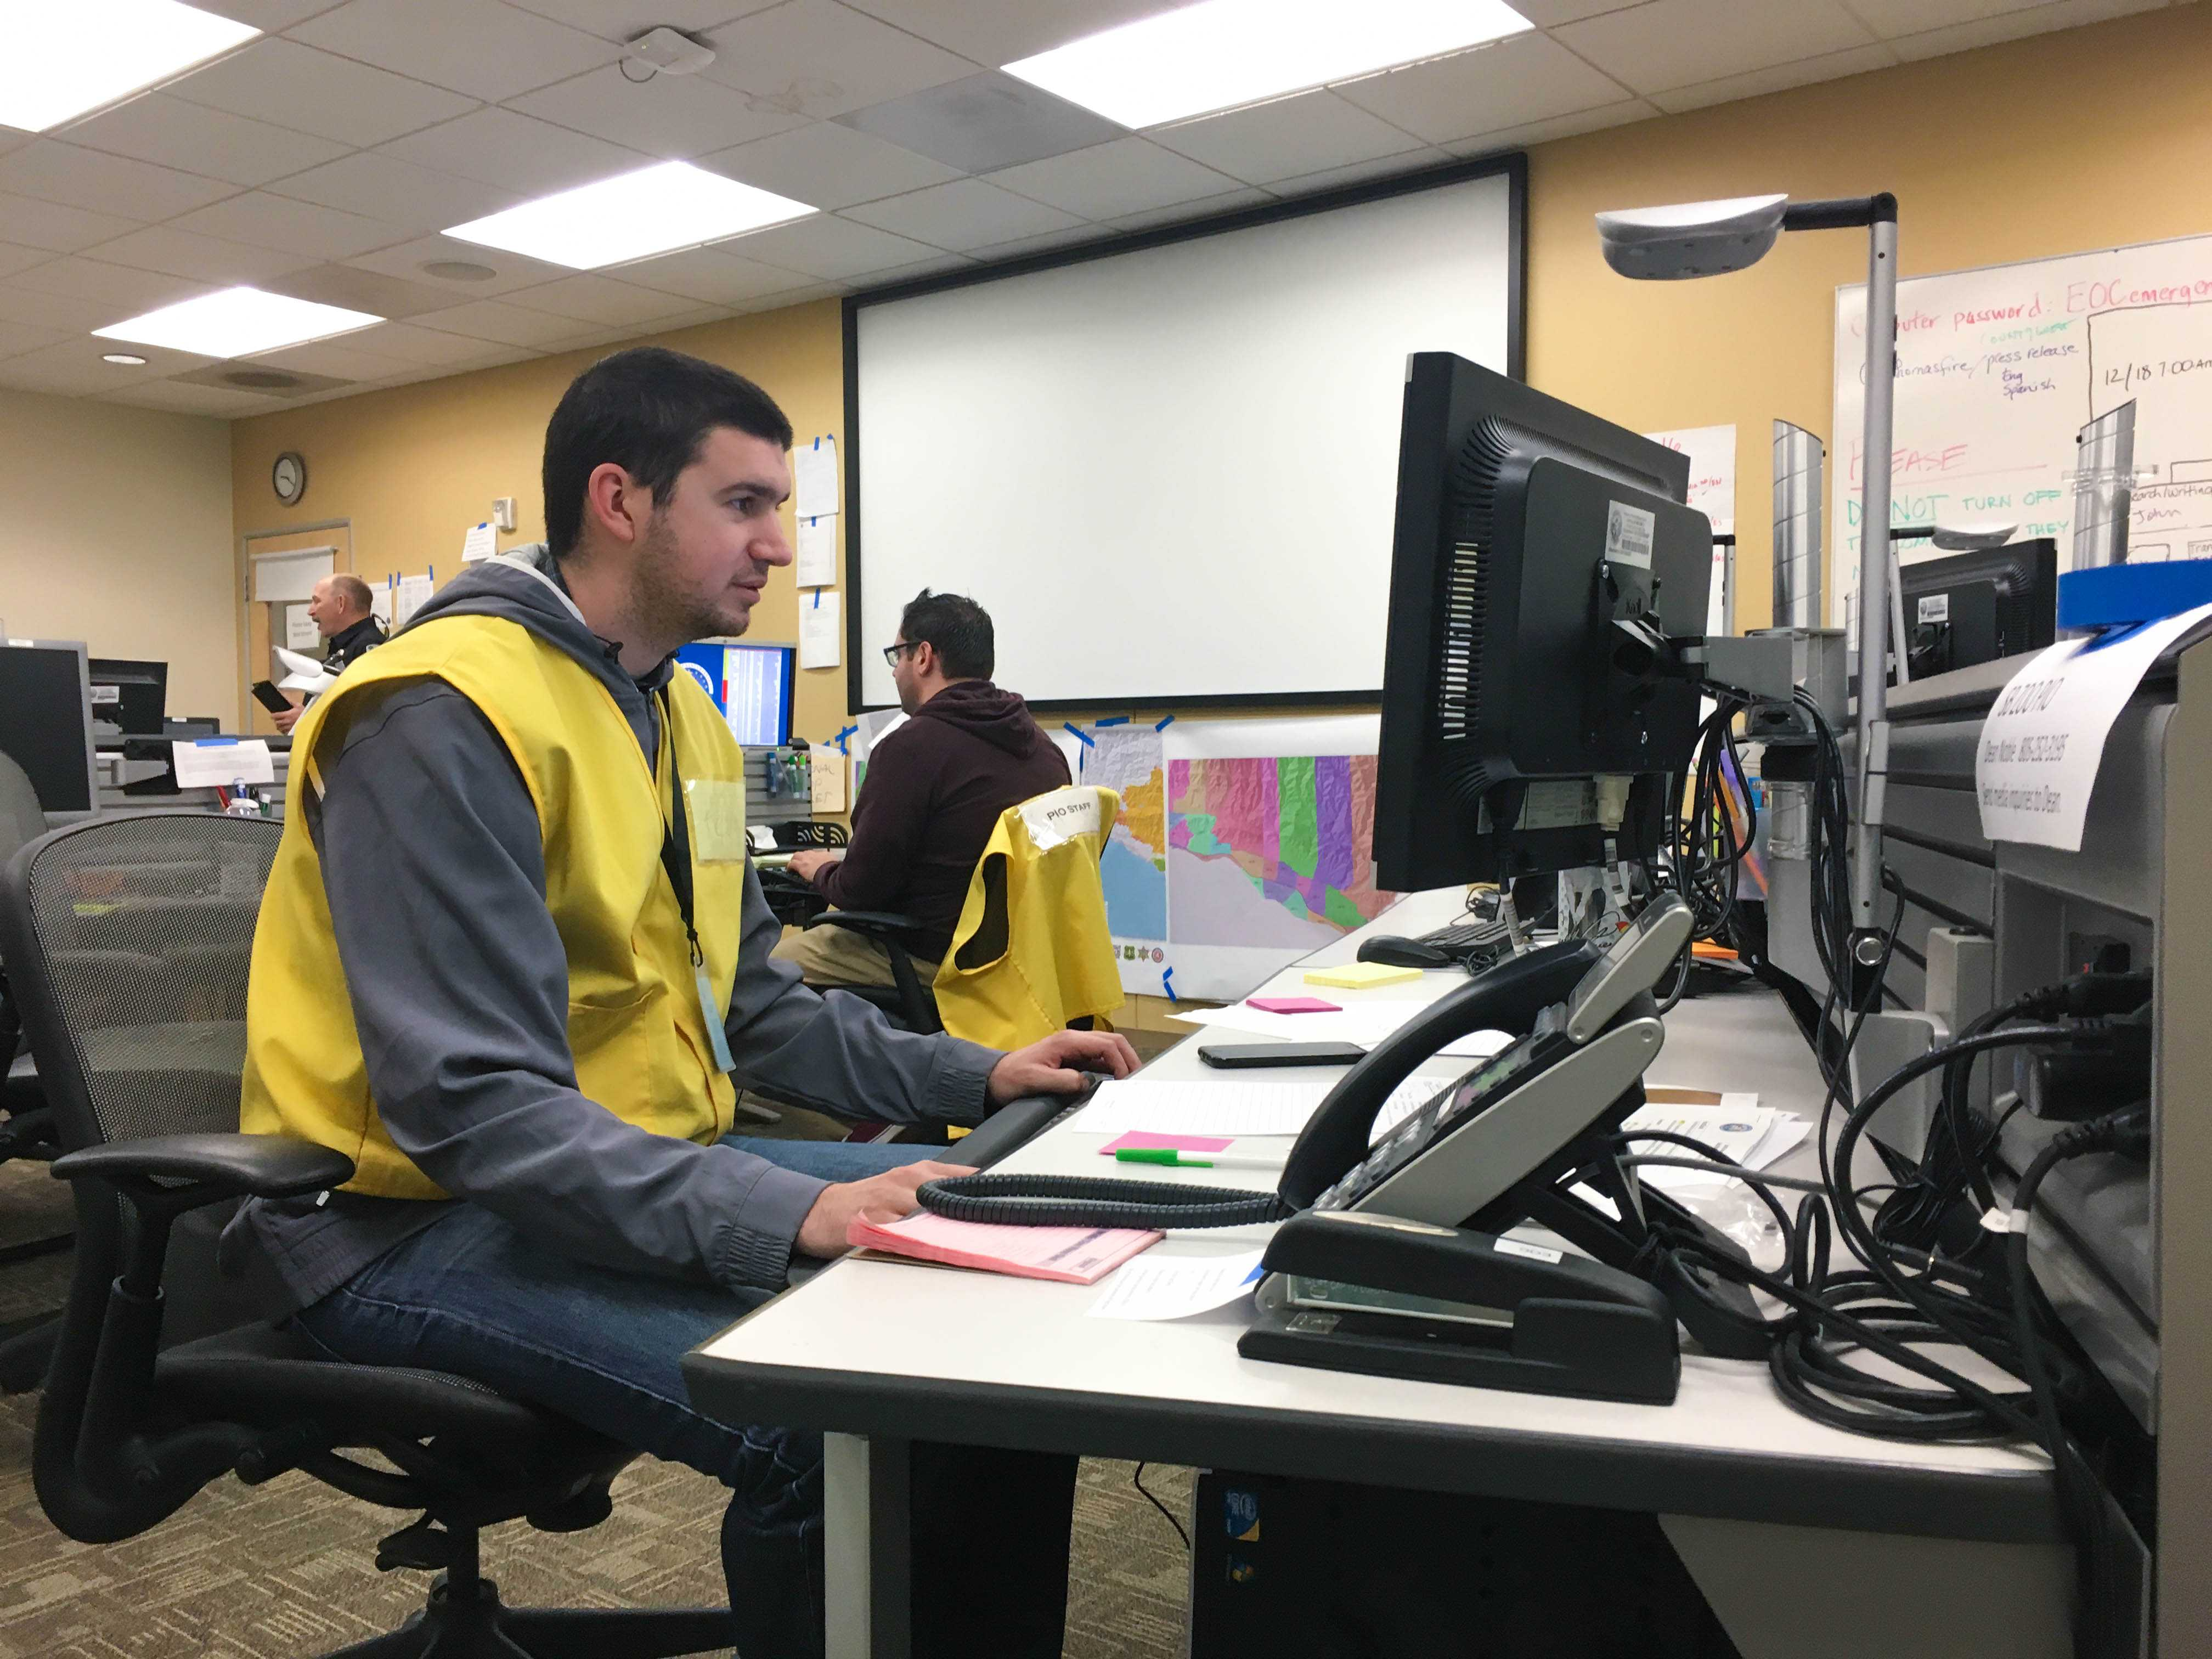 man in yellow vest sits at computer desk